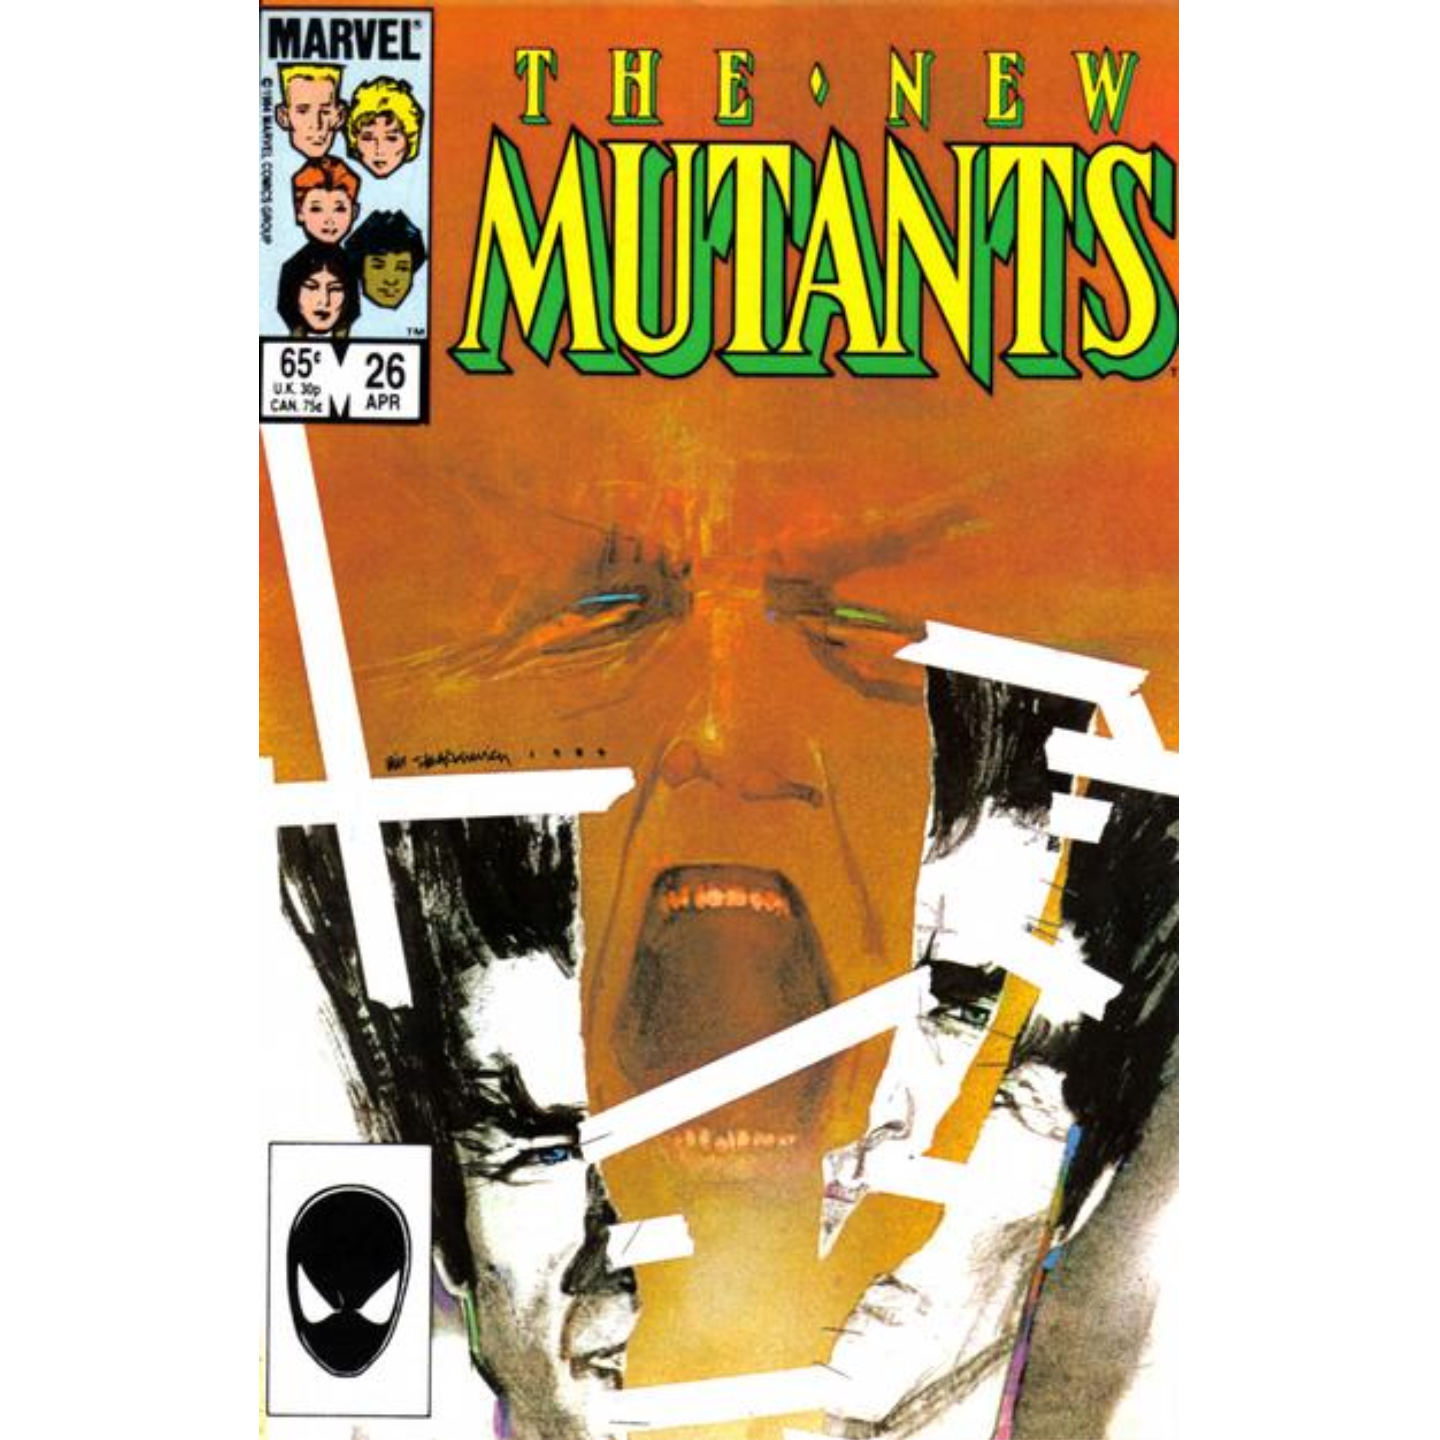 THE NEW MUTANTS #26 (KEY ISSUE)